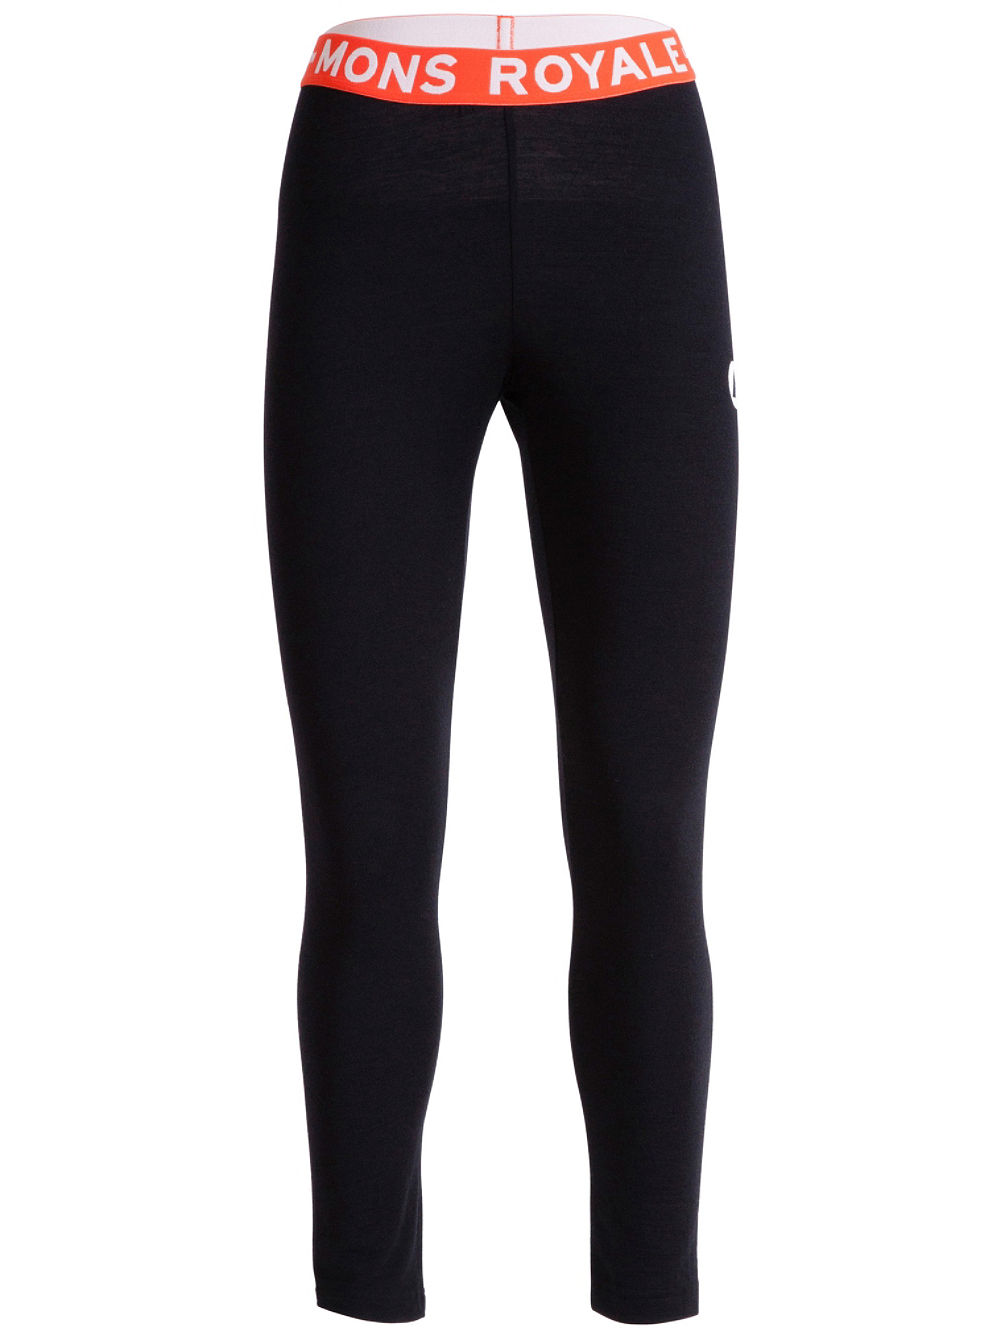 Merino Christy Leggings FWT Tech Pants